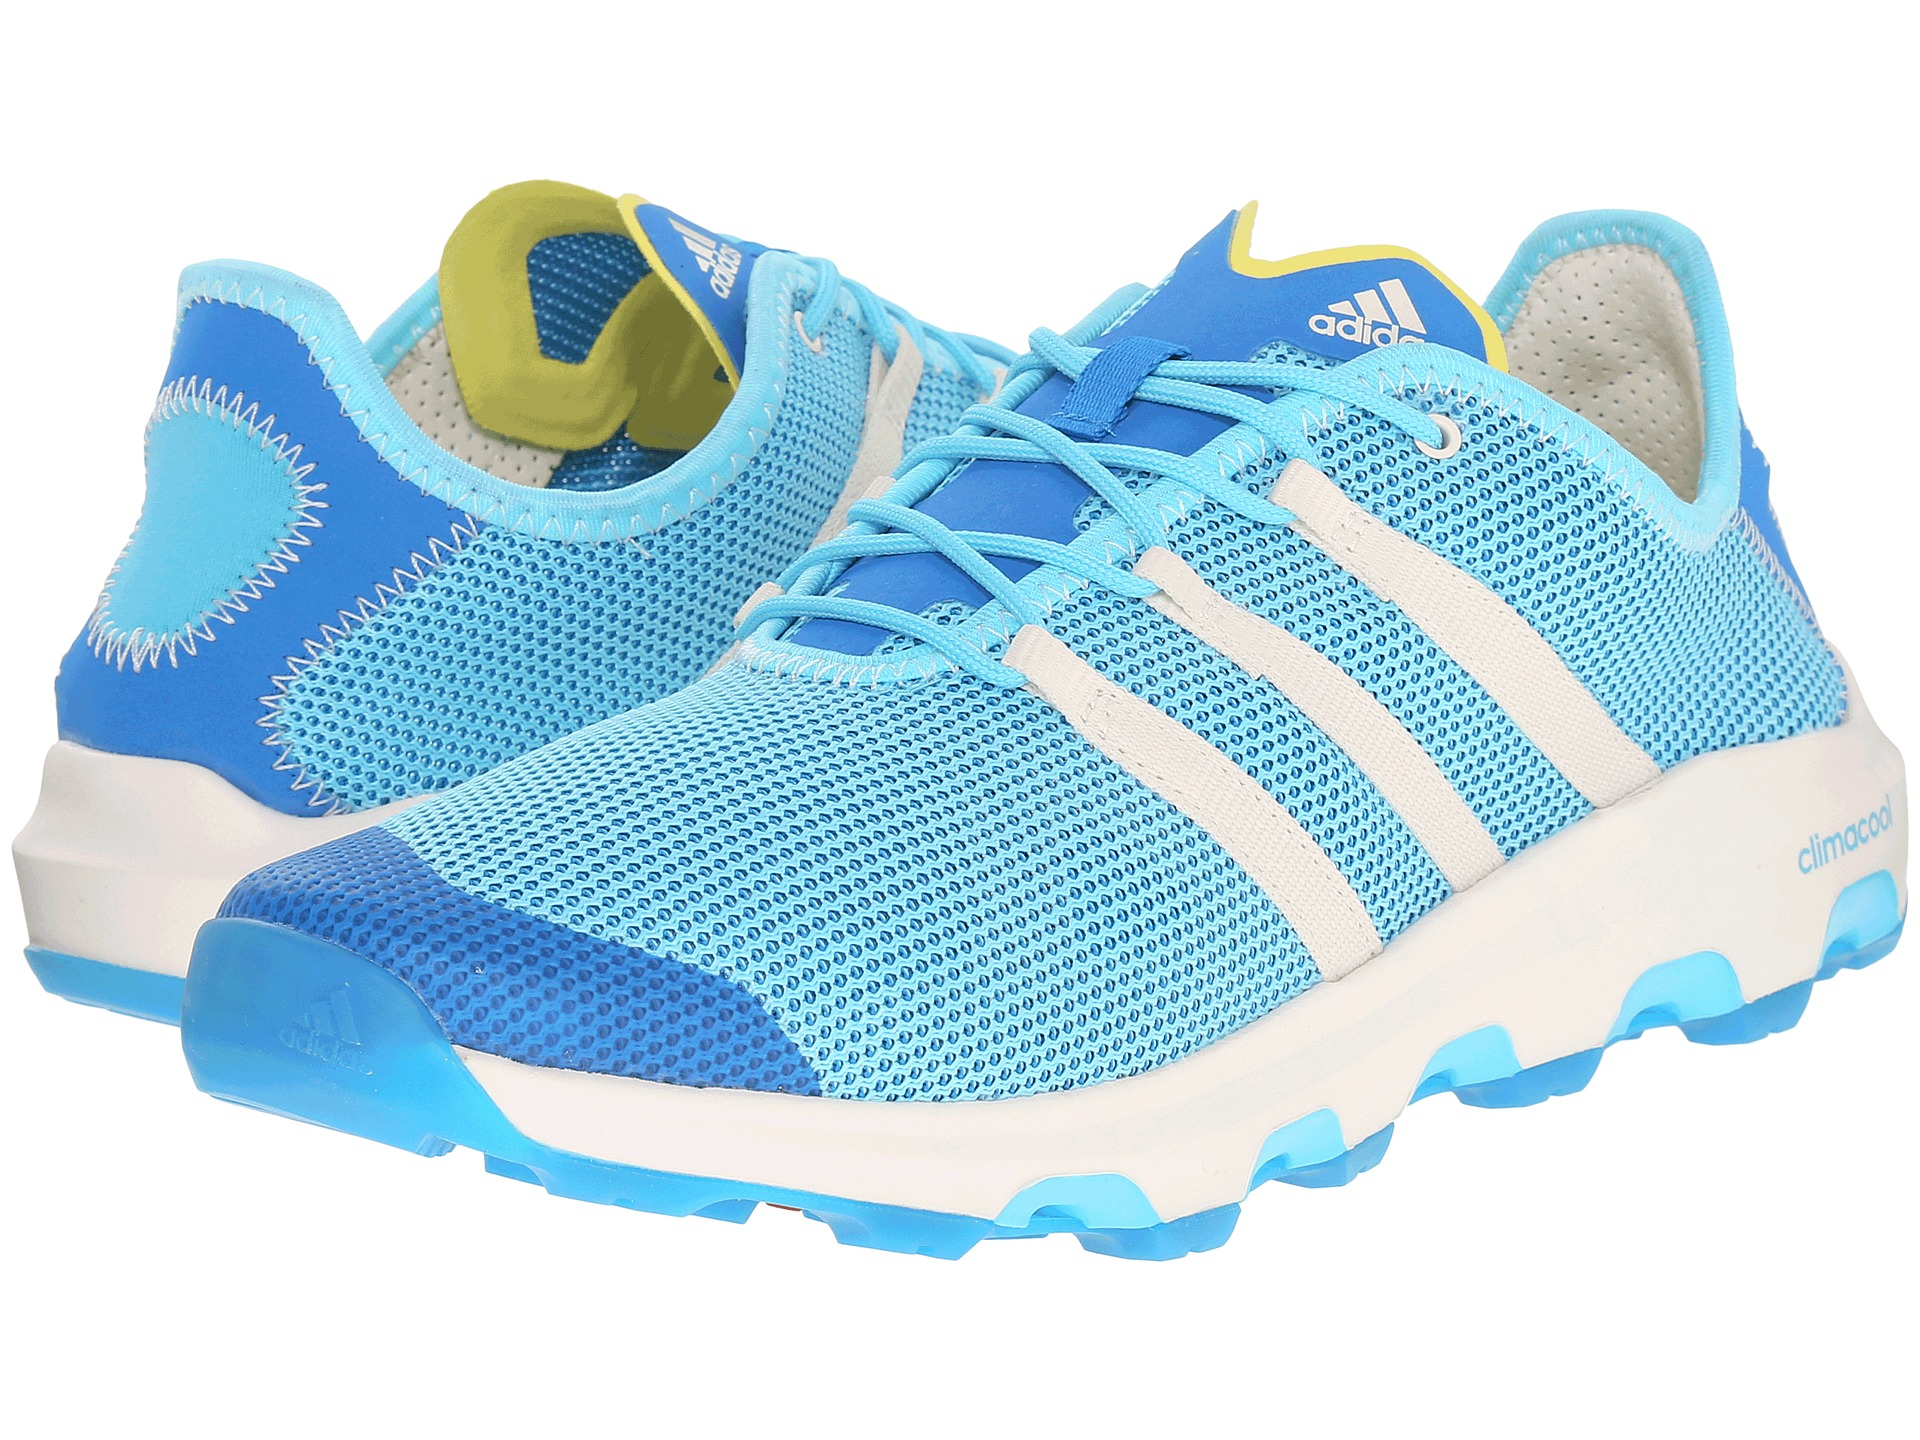 Lyst - adidas Originals Climacool® Voyager in White for Men 08a94881d125